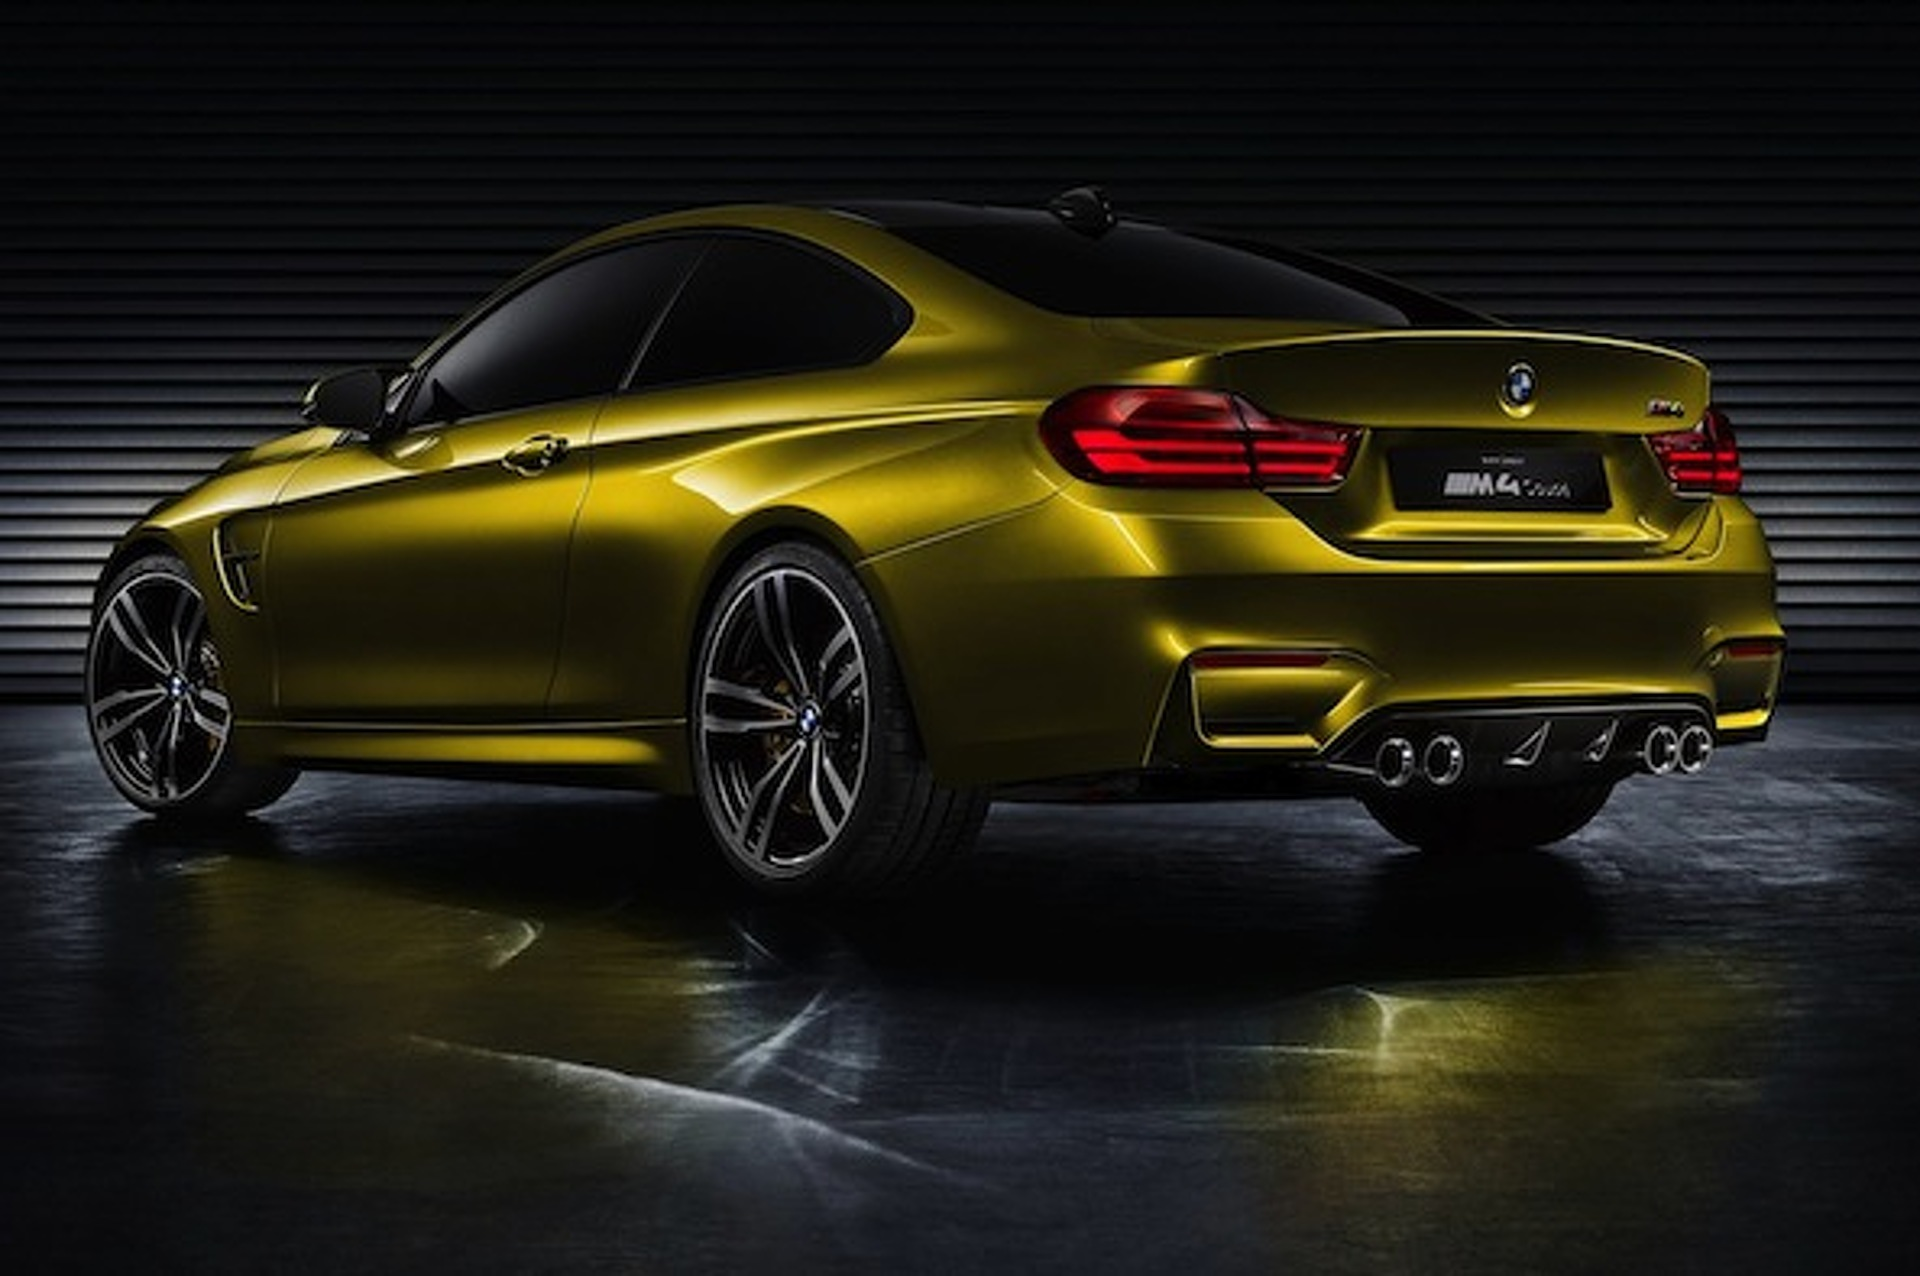 BMW M4 Concept: Official Info, Photos Unveiled at Pebble Beach